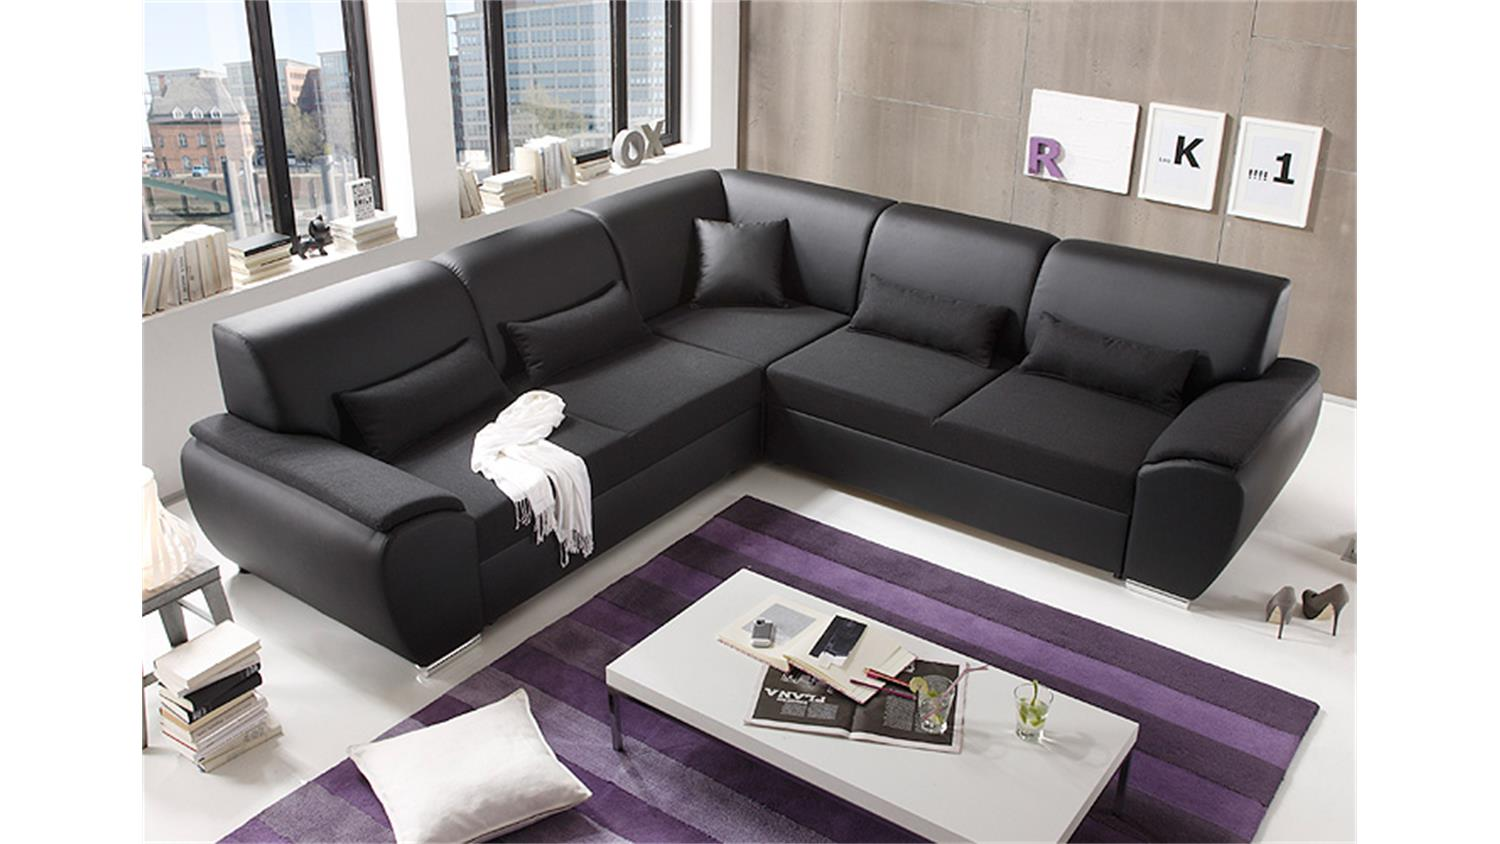 ecksofa antara schwarz inkl kissen 272x272. Black Bedroom Furniture Sets. Home Design Ideas